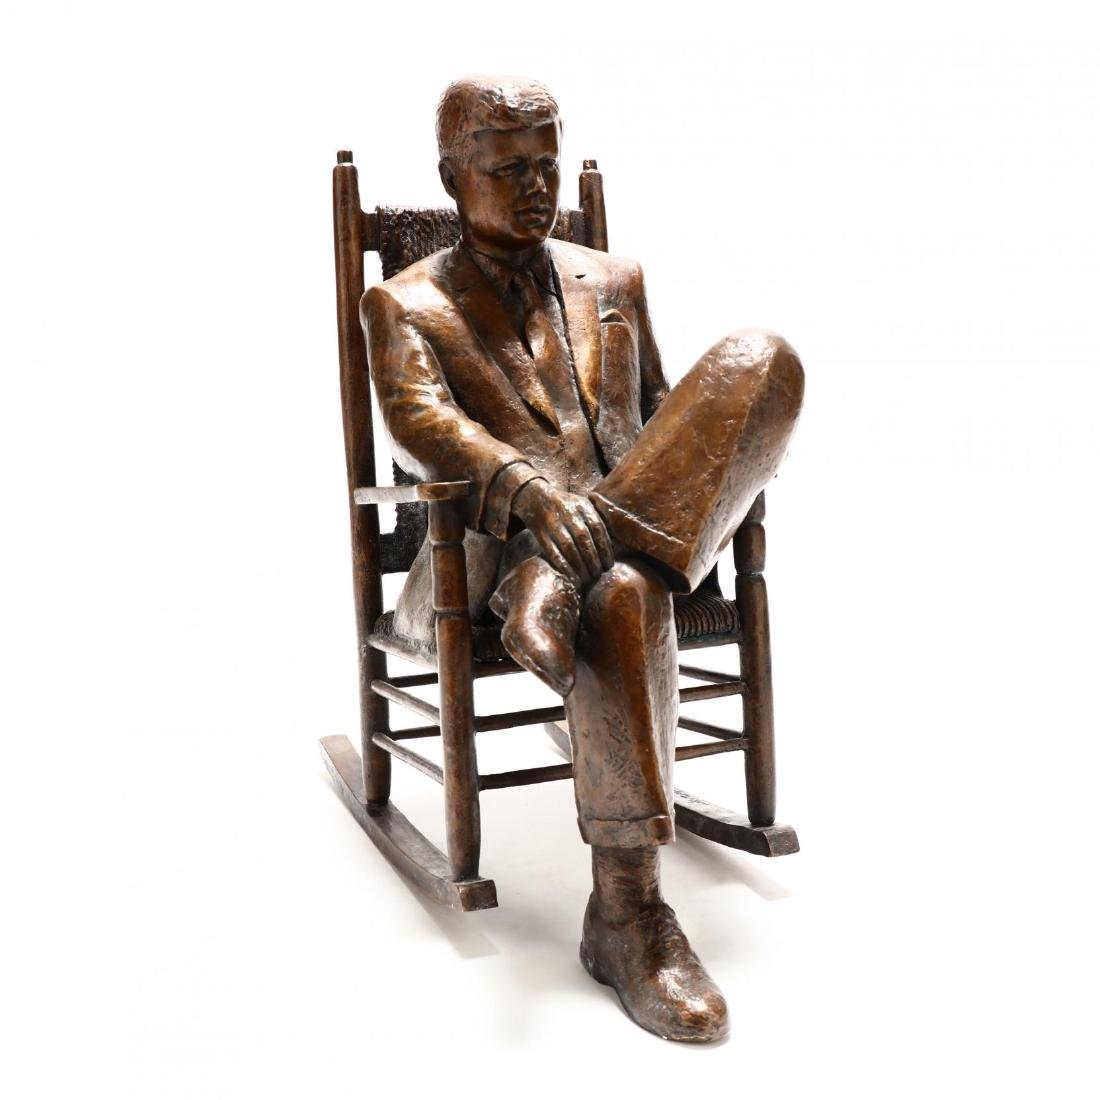 Cypriot Bronze of John F. Kennedy Relaxing in His